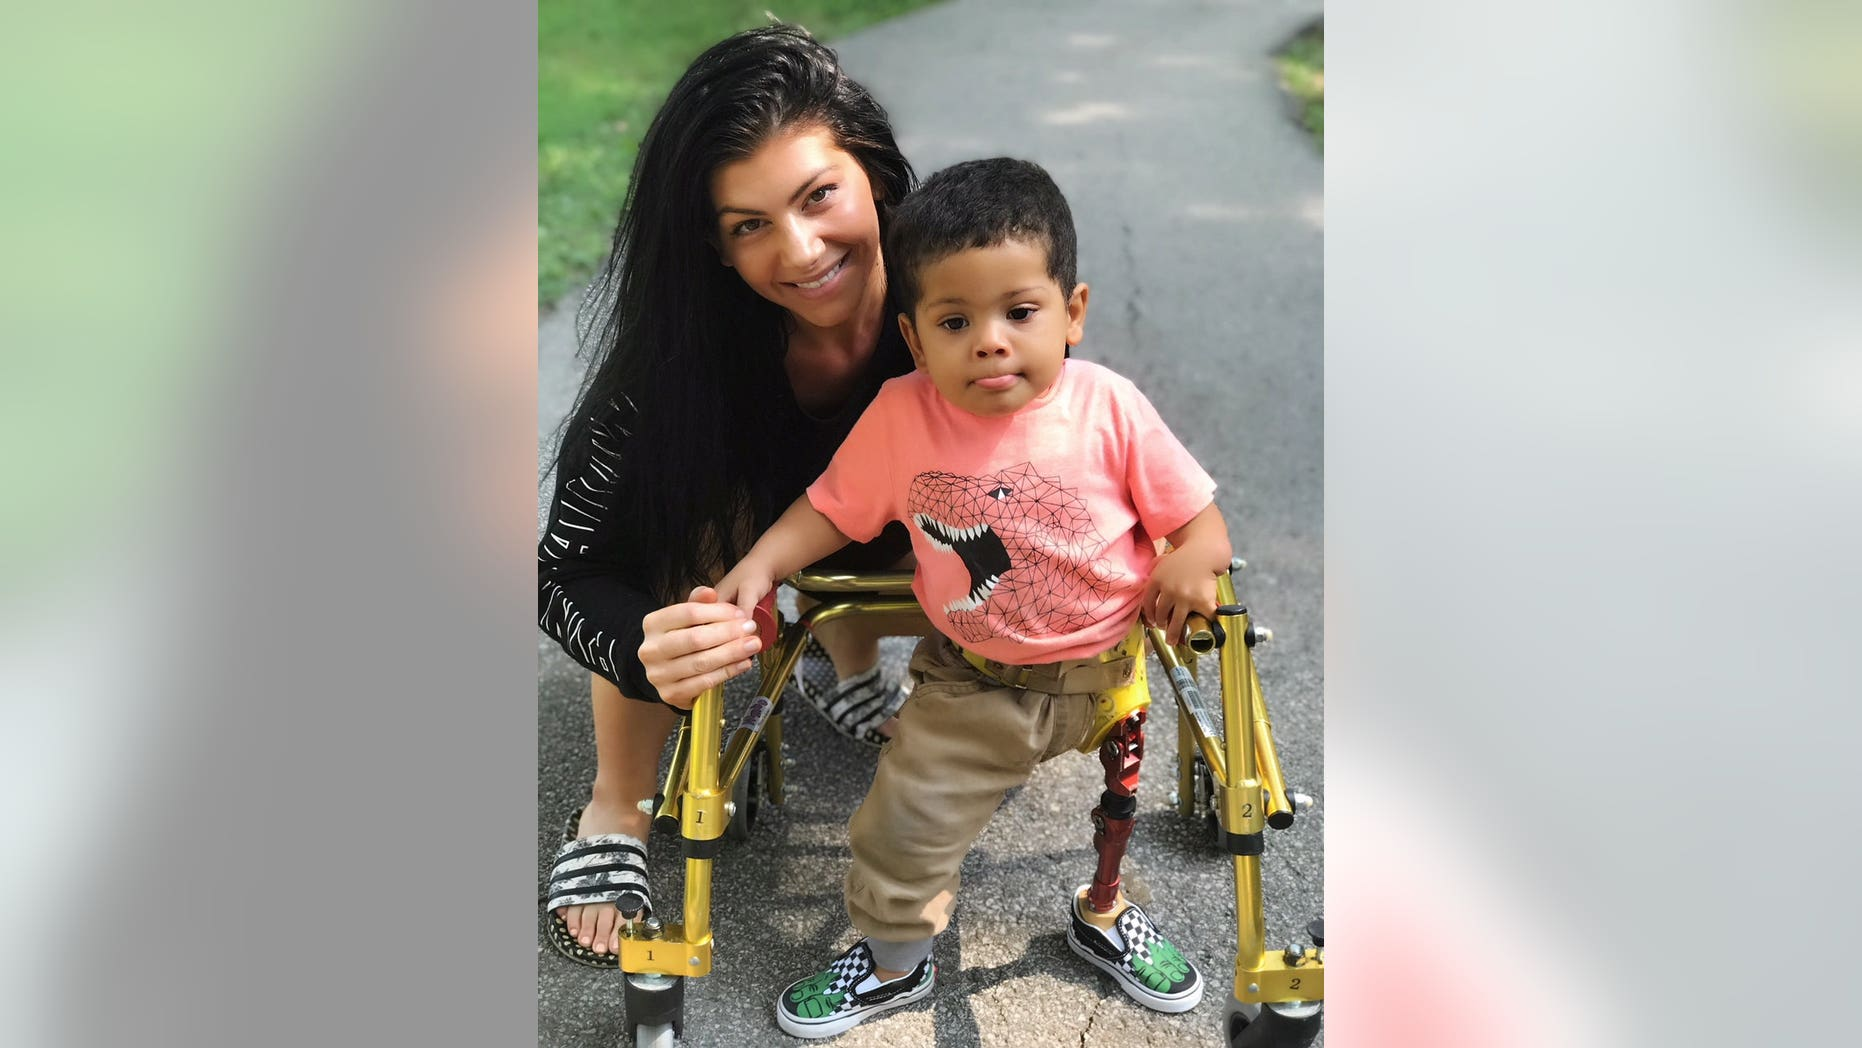 """The theft was so upsetting,"" said Josiah's mother Brie, 30. ""He relies on the prosthetic for his independence and mobility and to take that away from somebody is just crappy."""